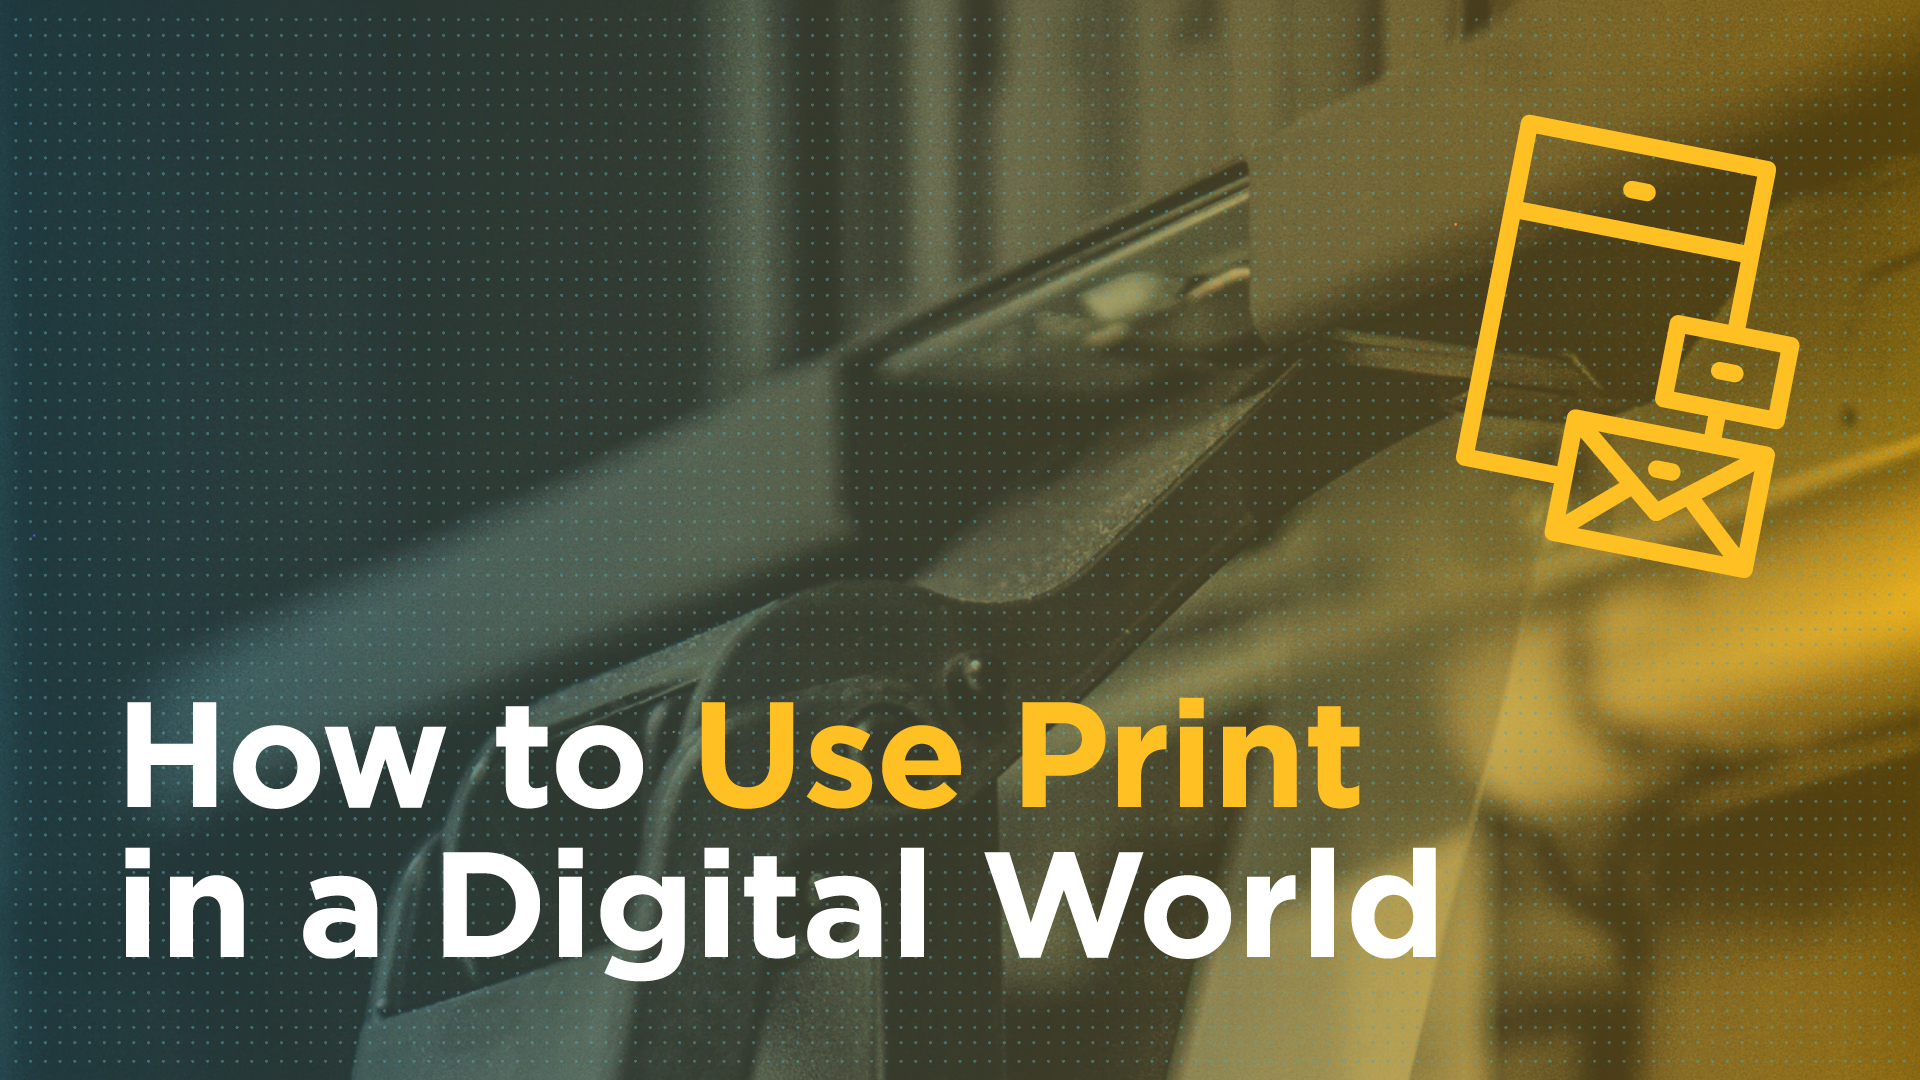 How to Use Print in a Digital World Featured Image